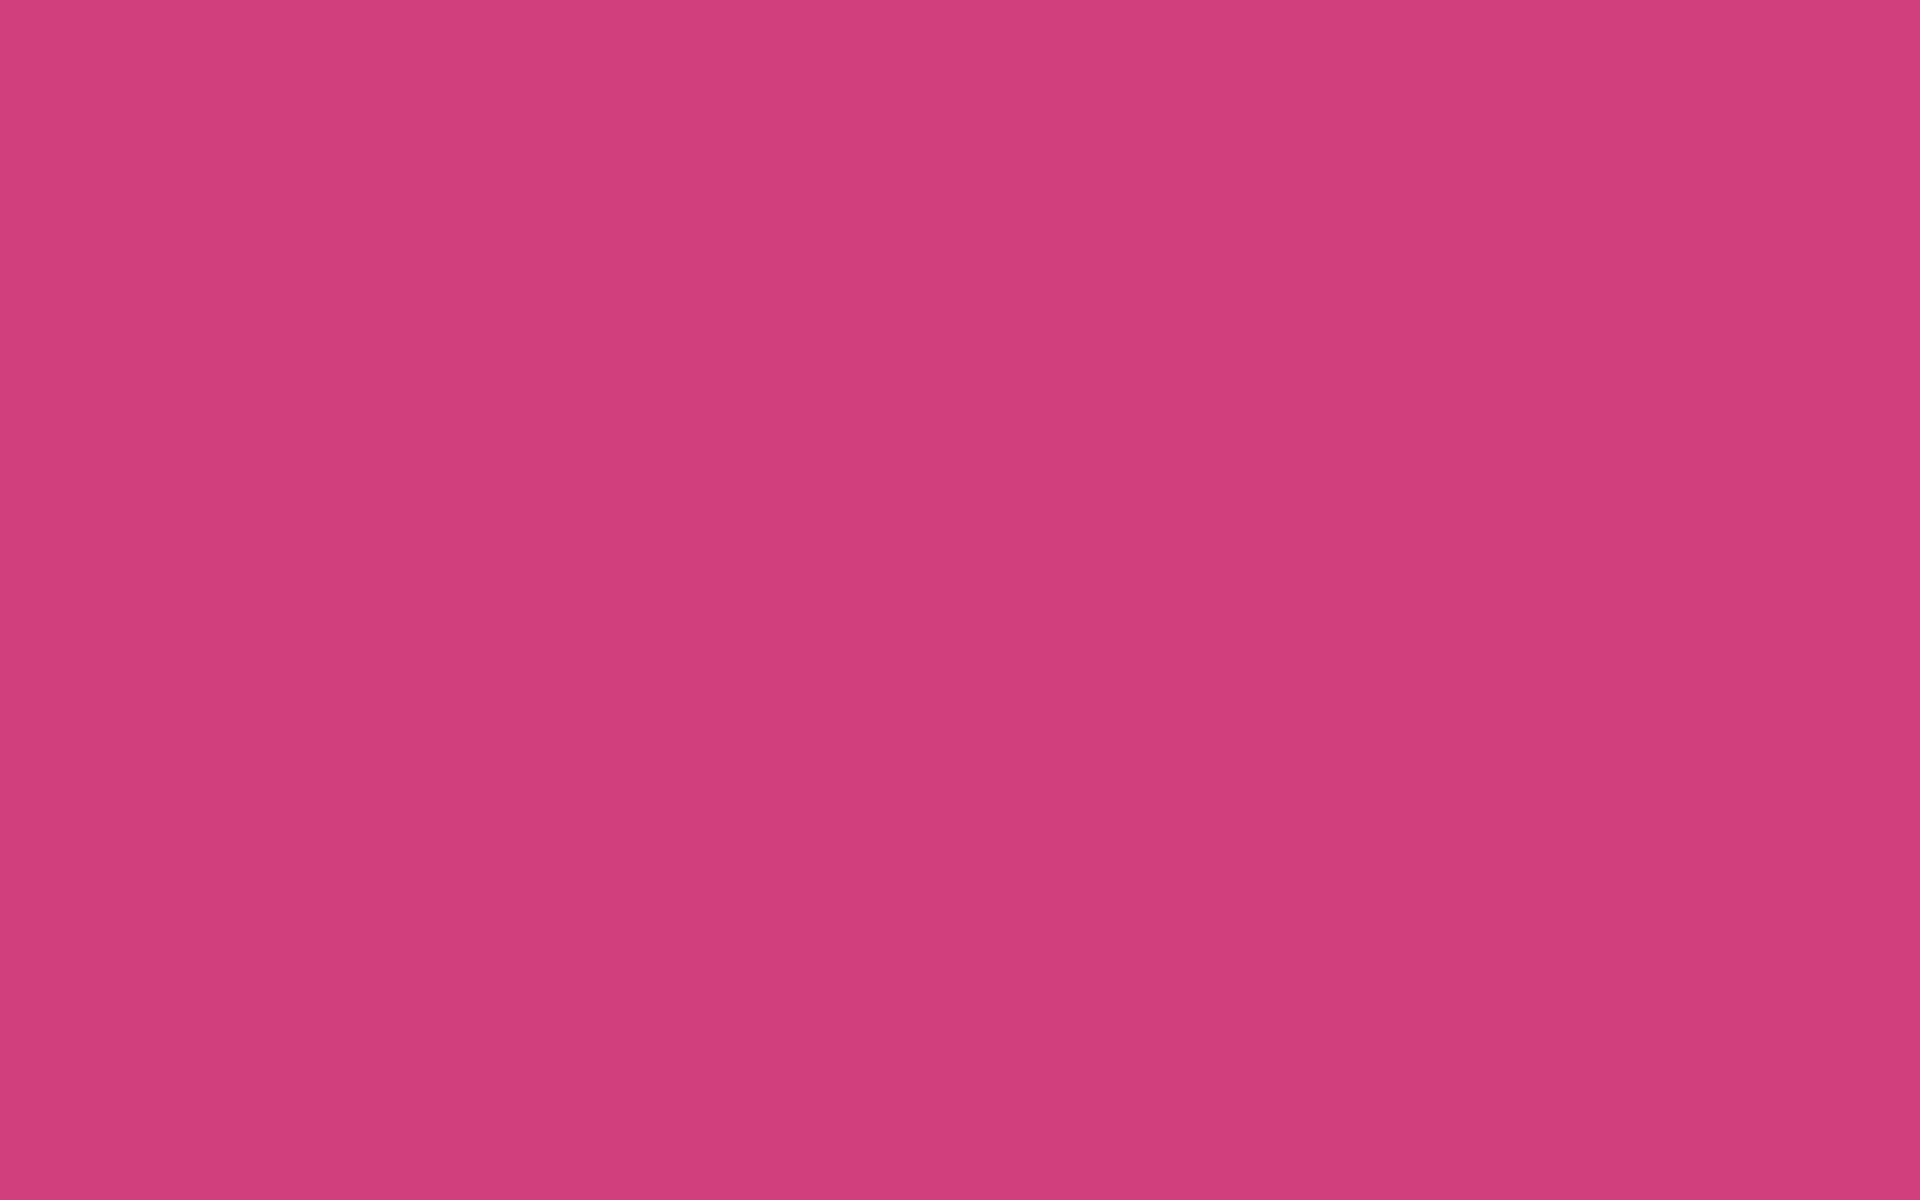 1920x1200 Magenta Pantone Solid Color Background